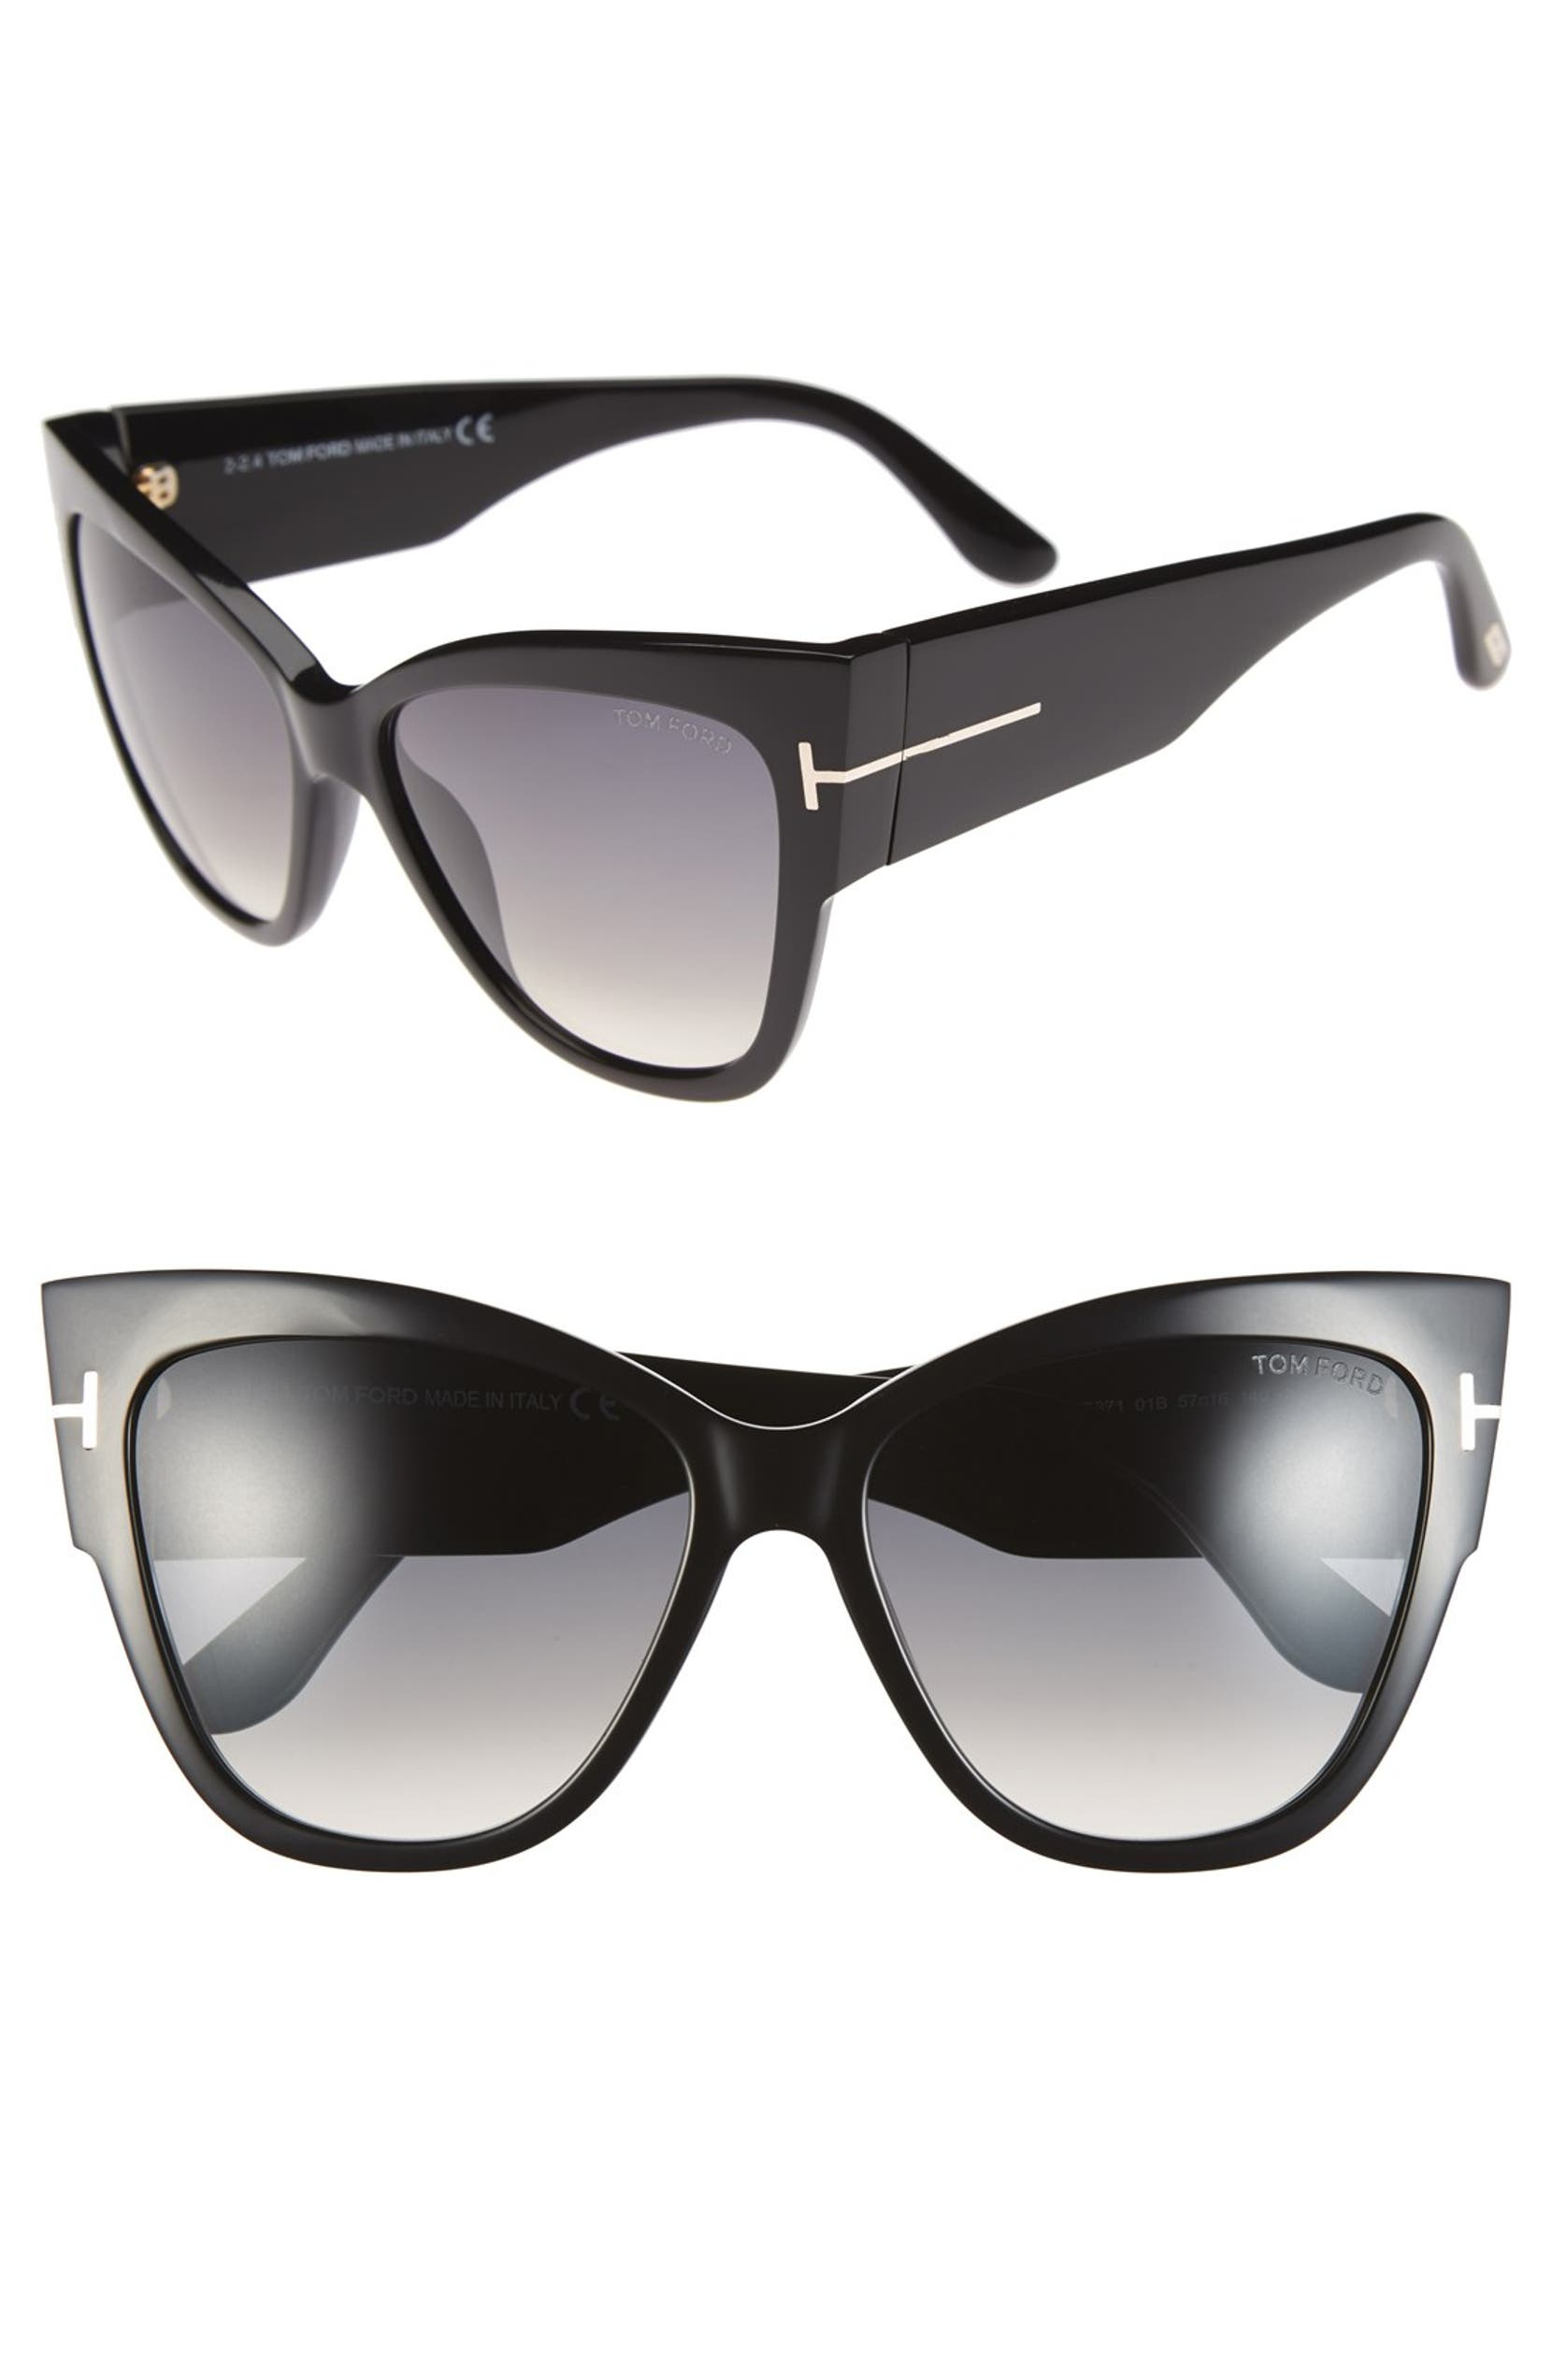 f7d82cc4d45 119 97 390 00 Source · Tom Ford Anoushka 57mm Gradient Cat Eye Sunglasses  Nordstrom